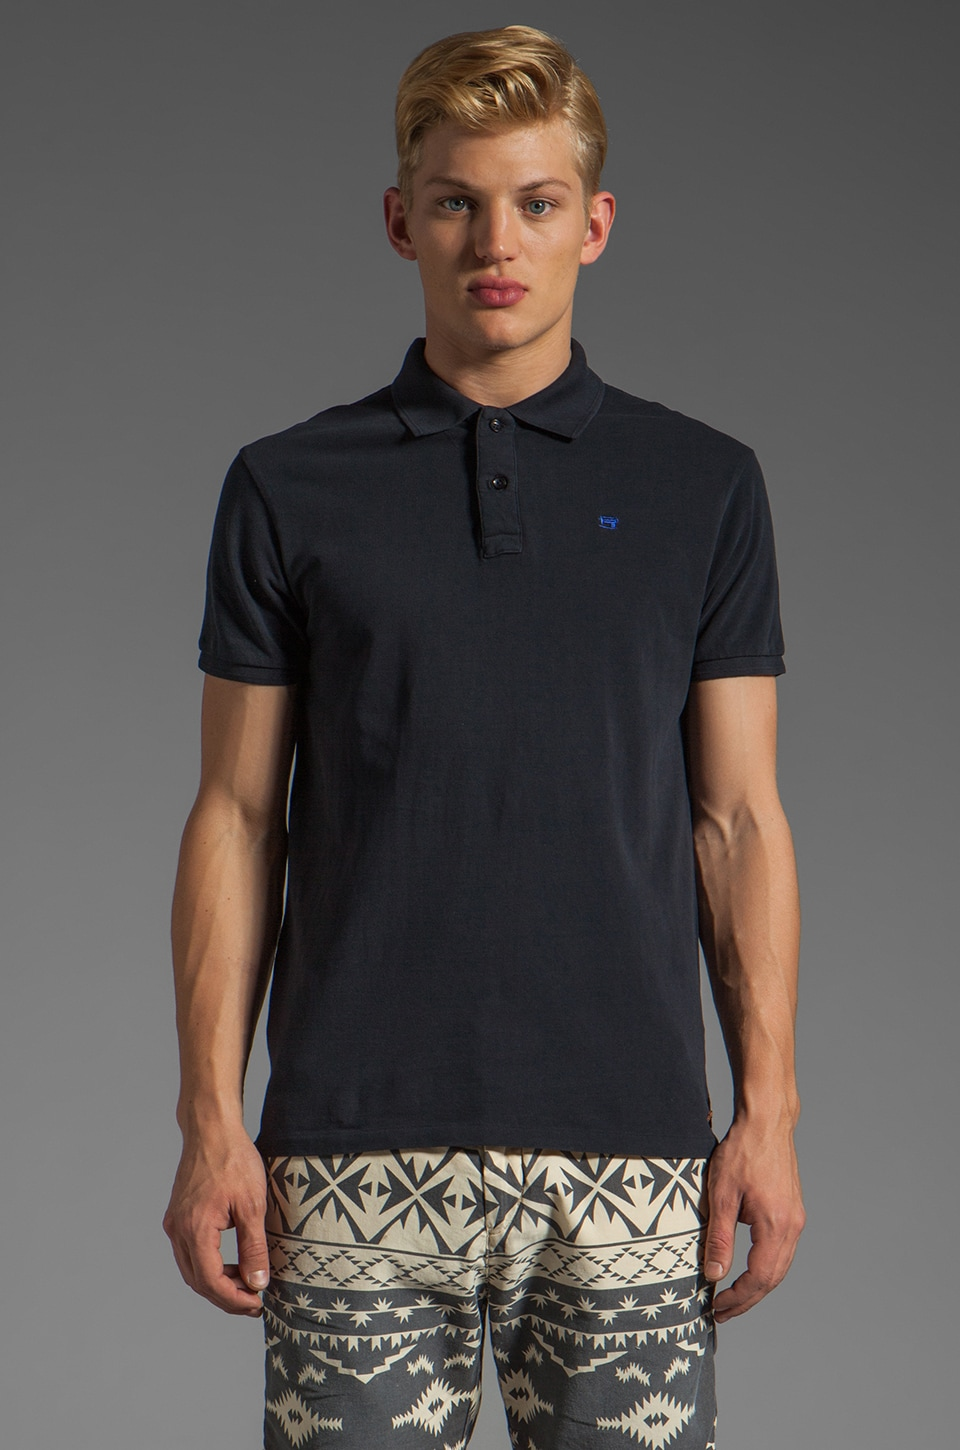 Scotch & Soda Pique Polo in Night